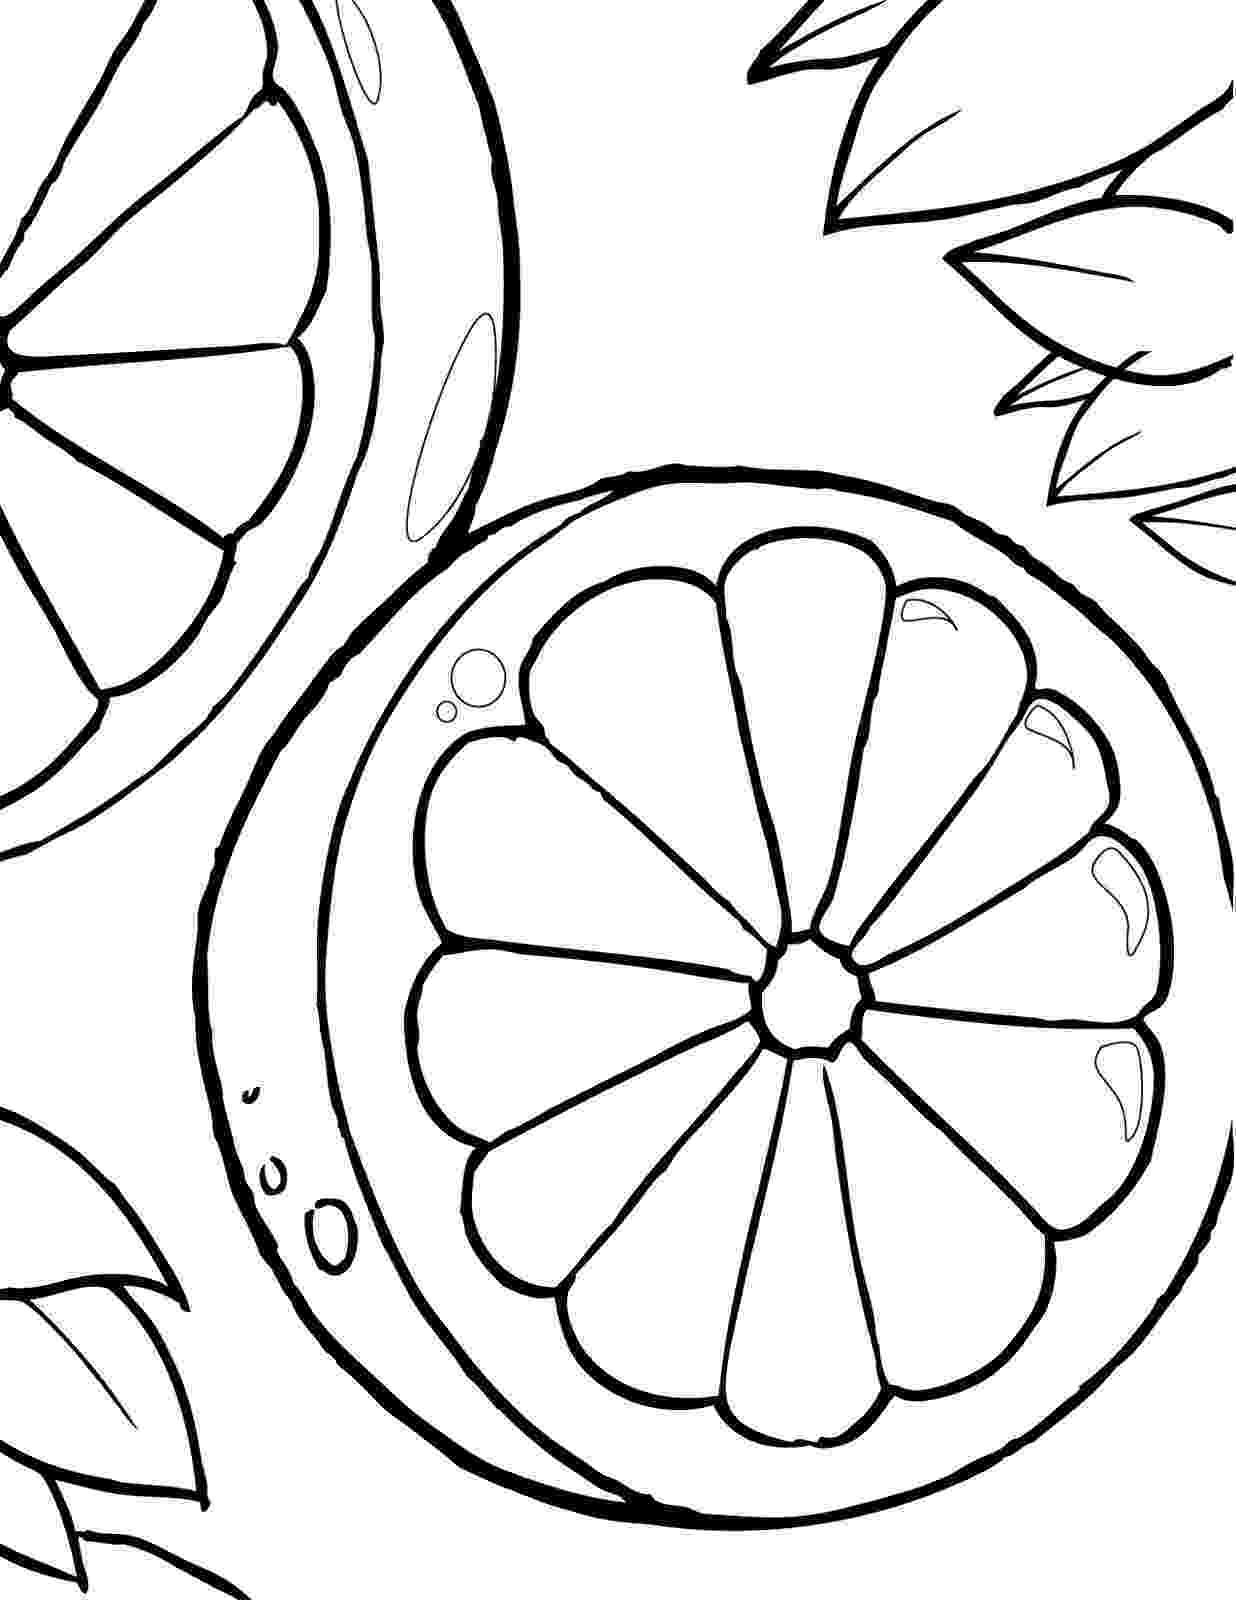 coloring pigs free printable lego coloring pages for kids cool2bkids coloring pigs